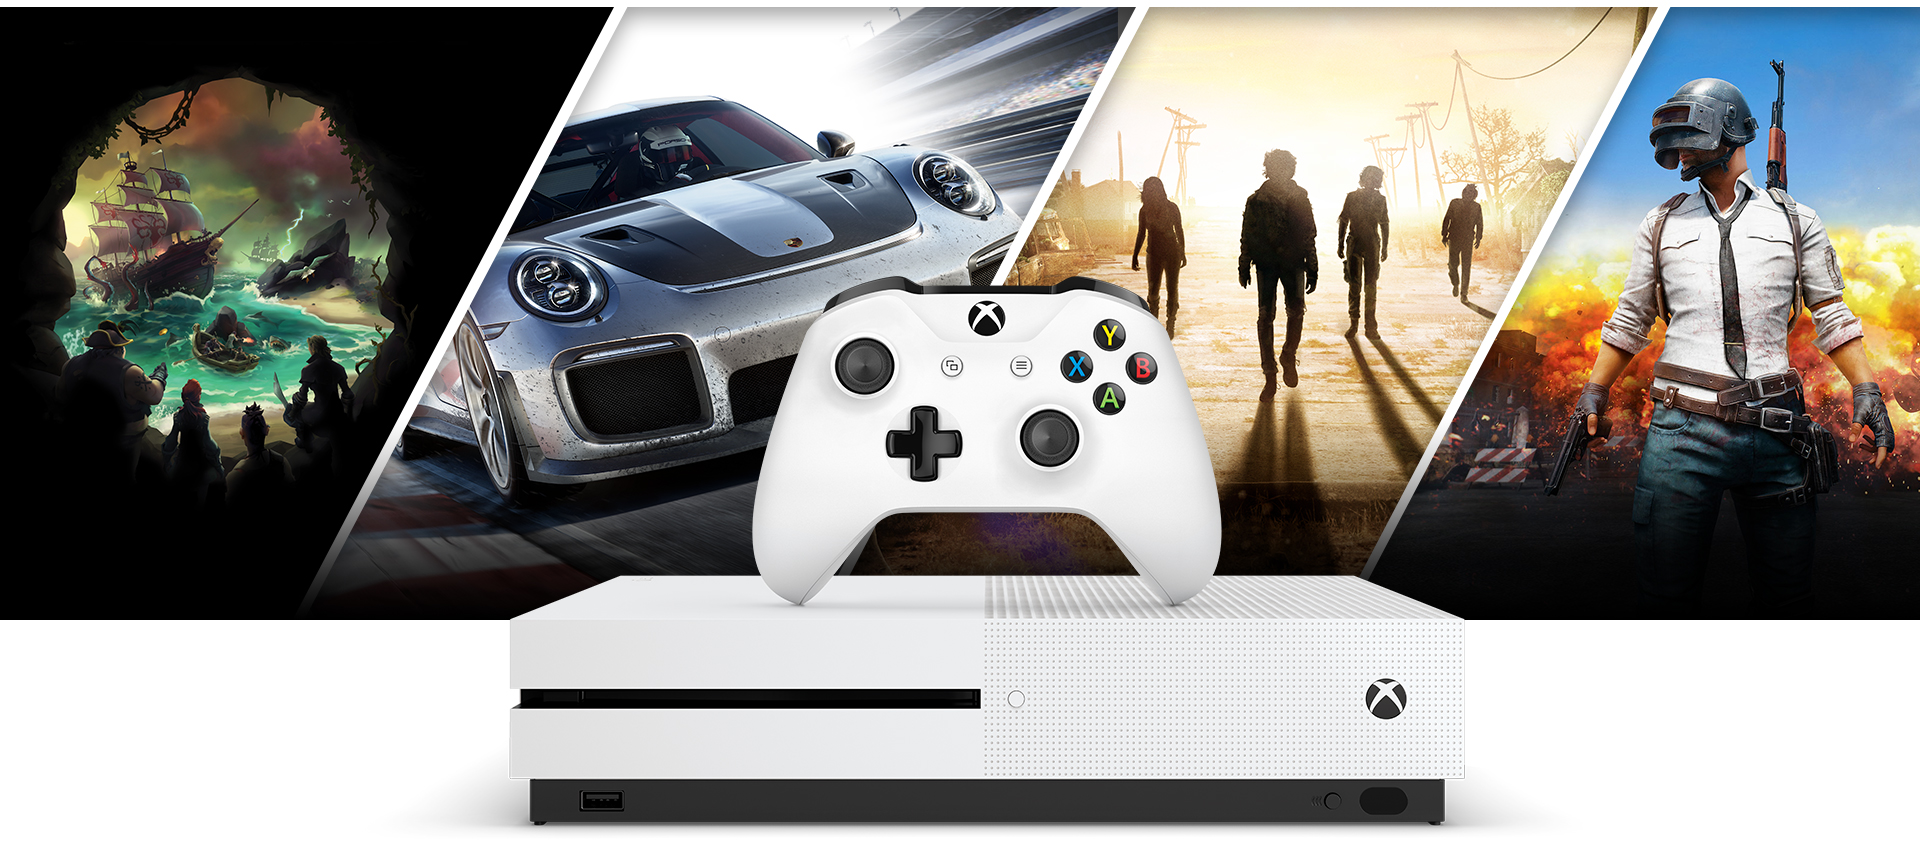 Grafik från Sea of Thieves, Forza 7, State of Decay 3 och Player Unknown's Battlegrounds runt Xbox One S och en vit Xbox-handkontroll